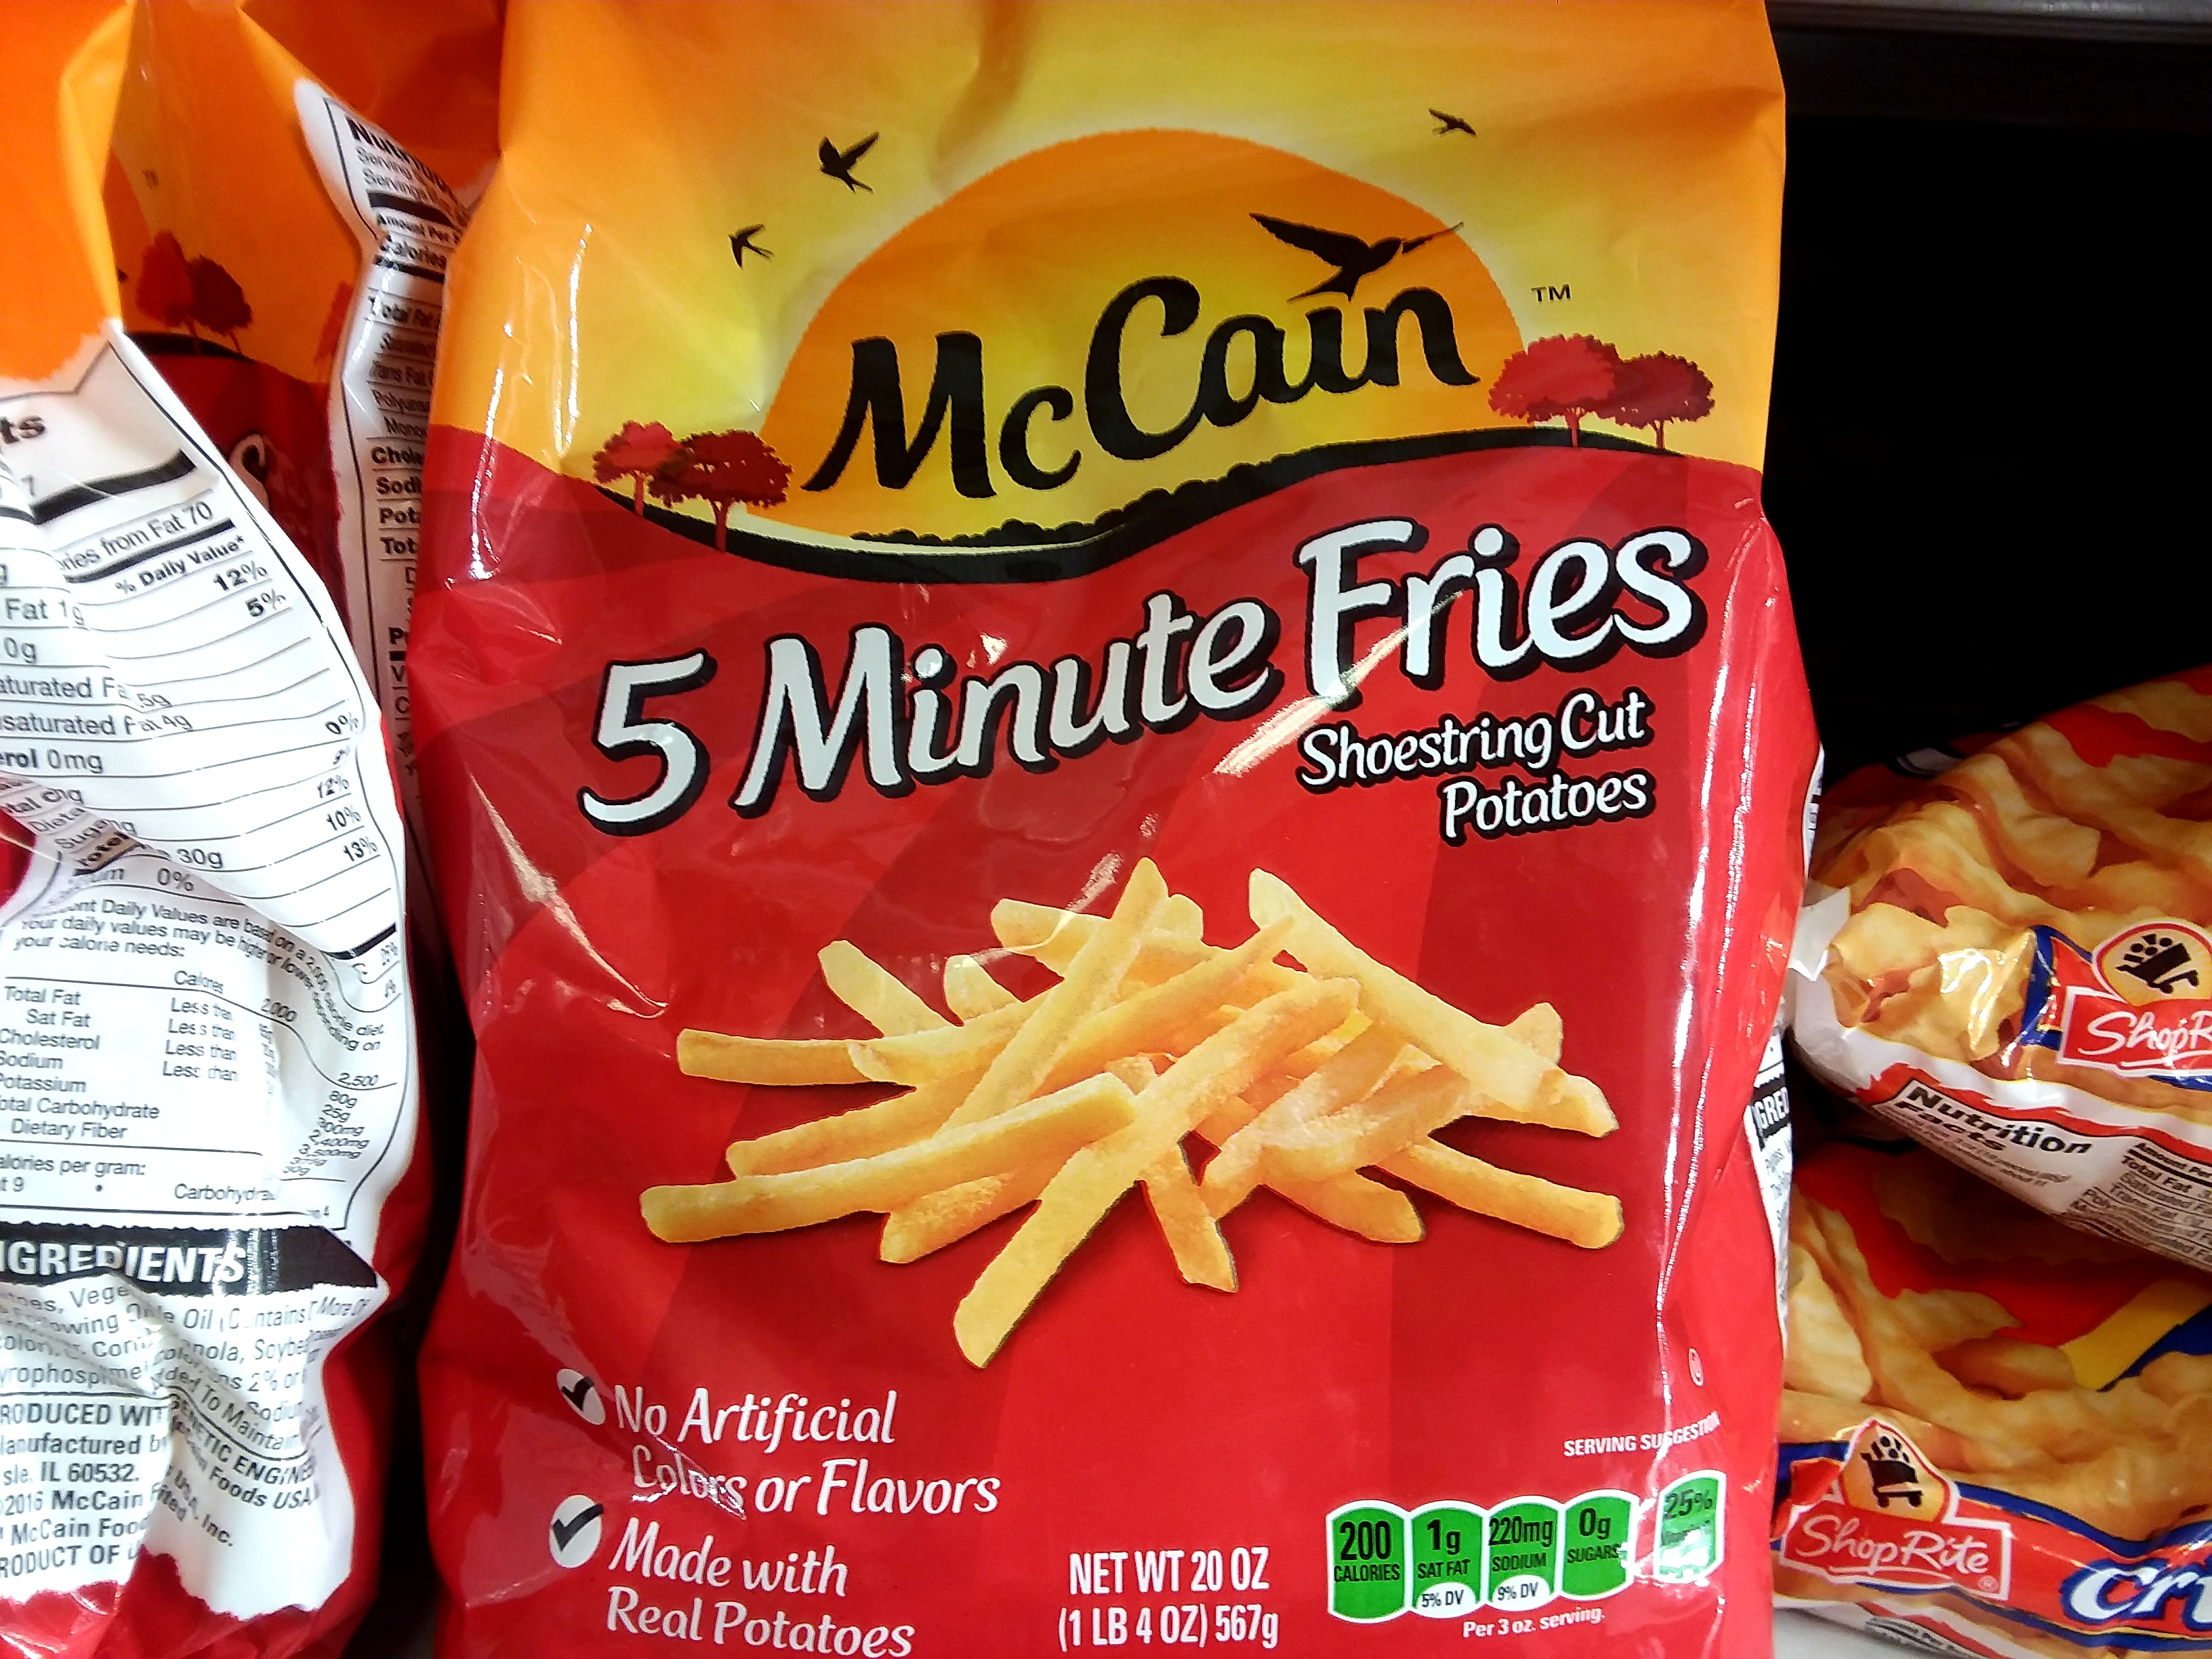 McCain Fries at Shoprite